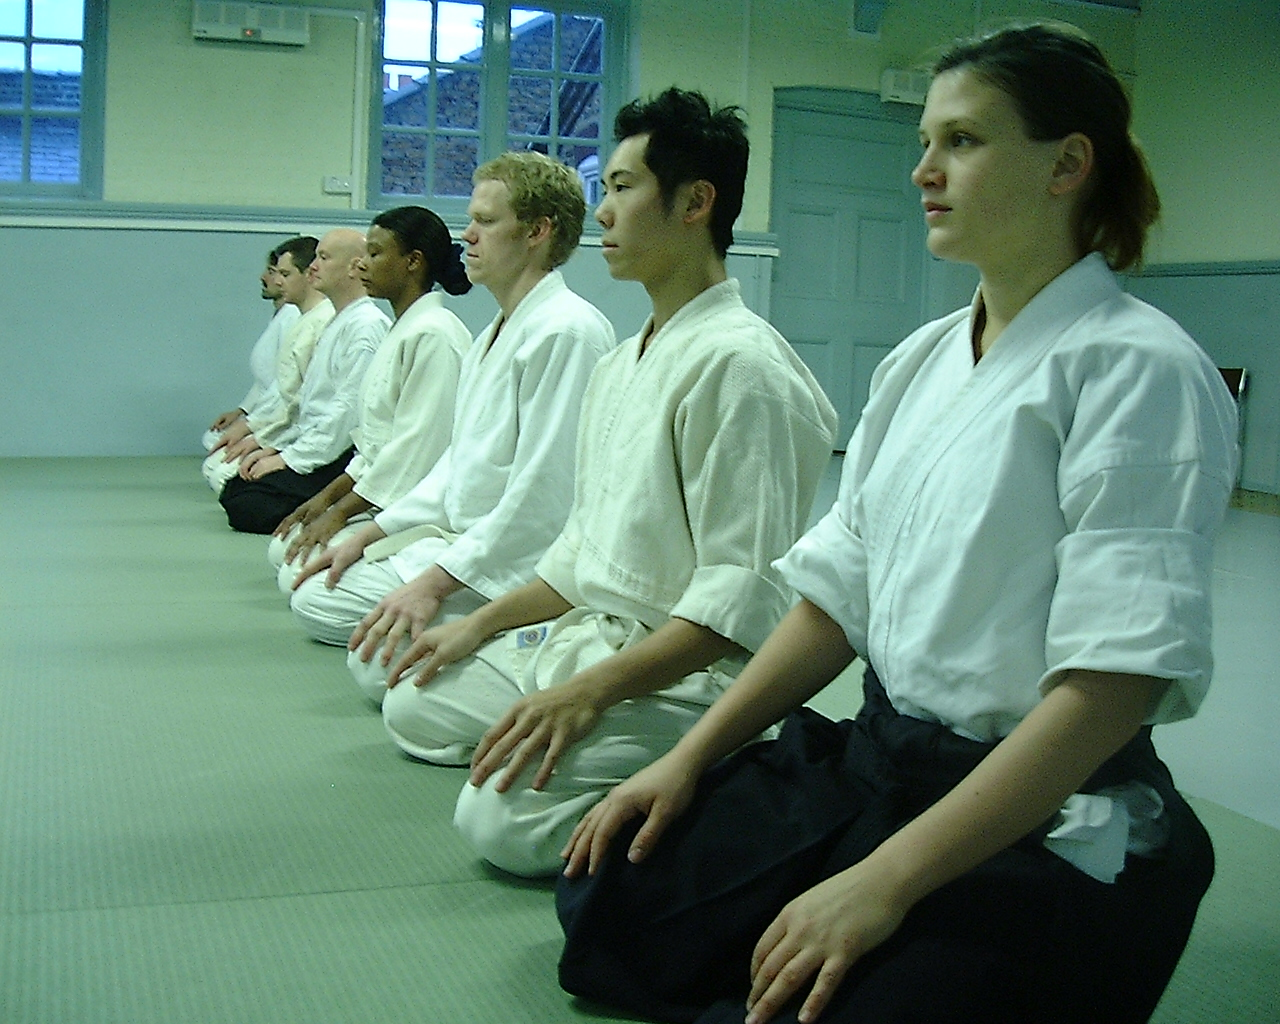 Seiza the meaning and value of sitting in seiza | movingeast blog